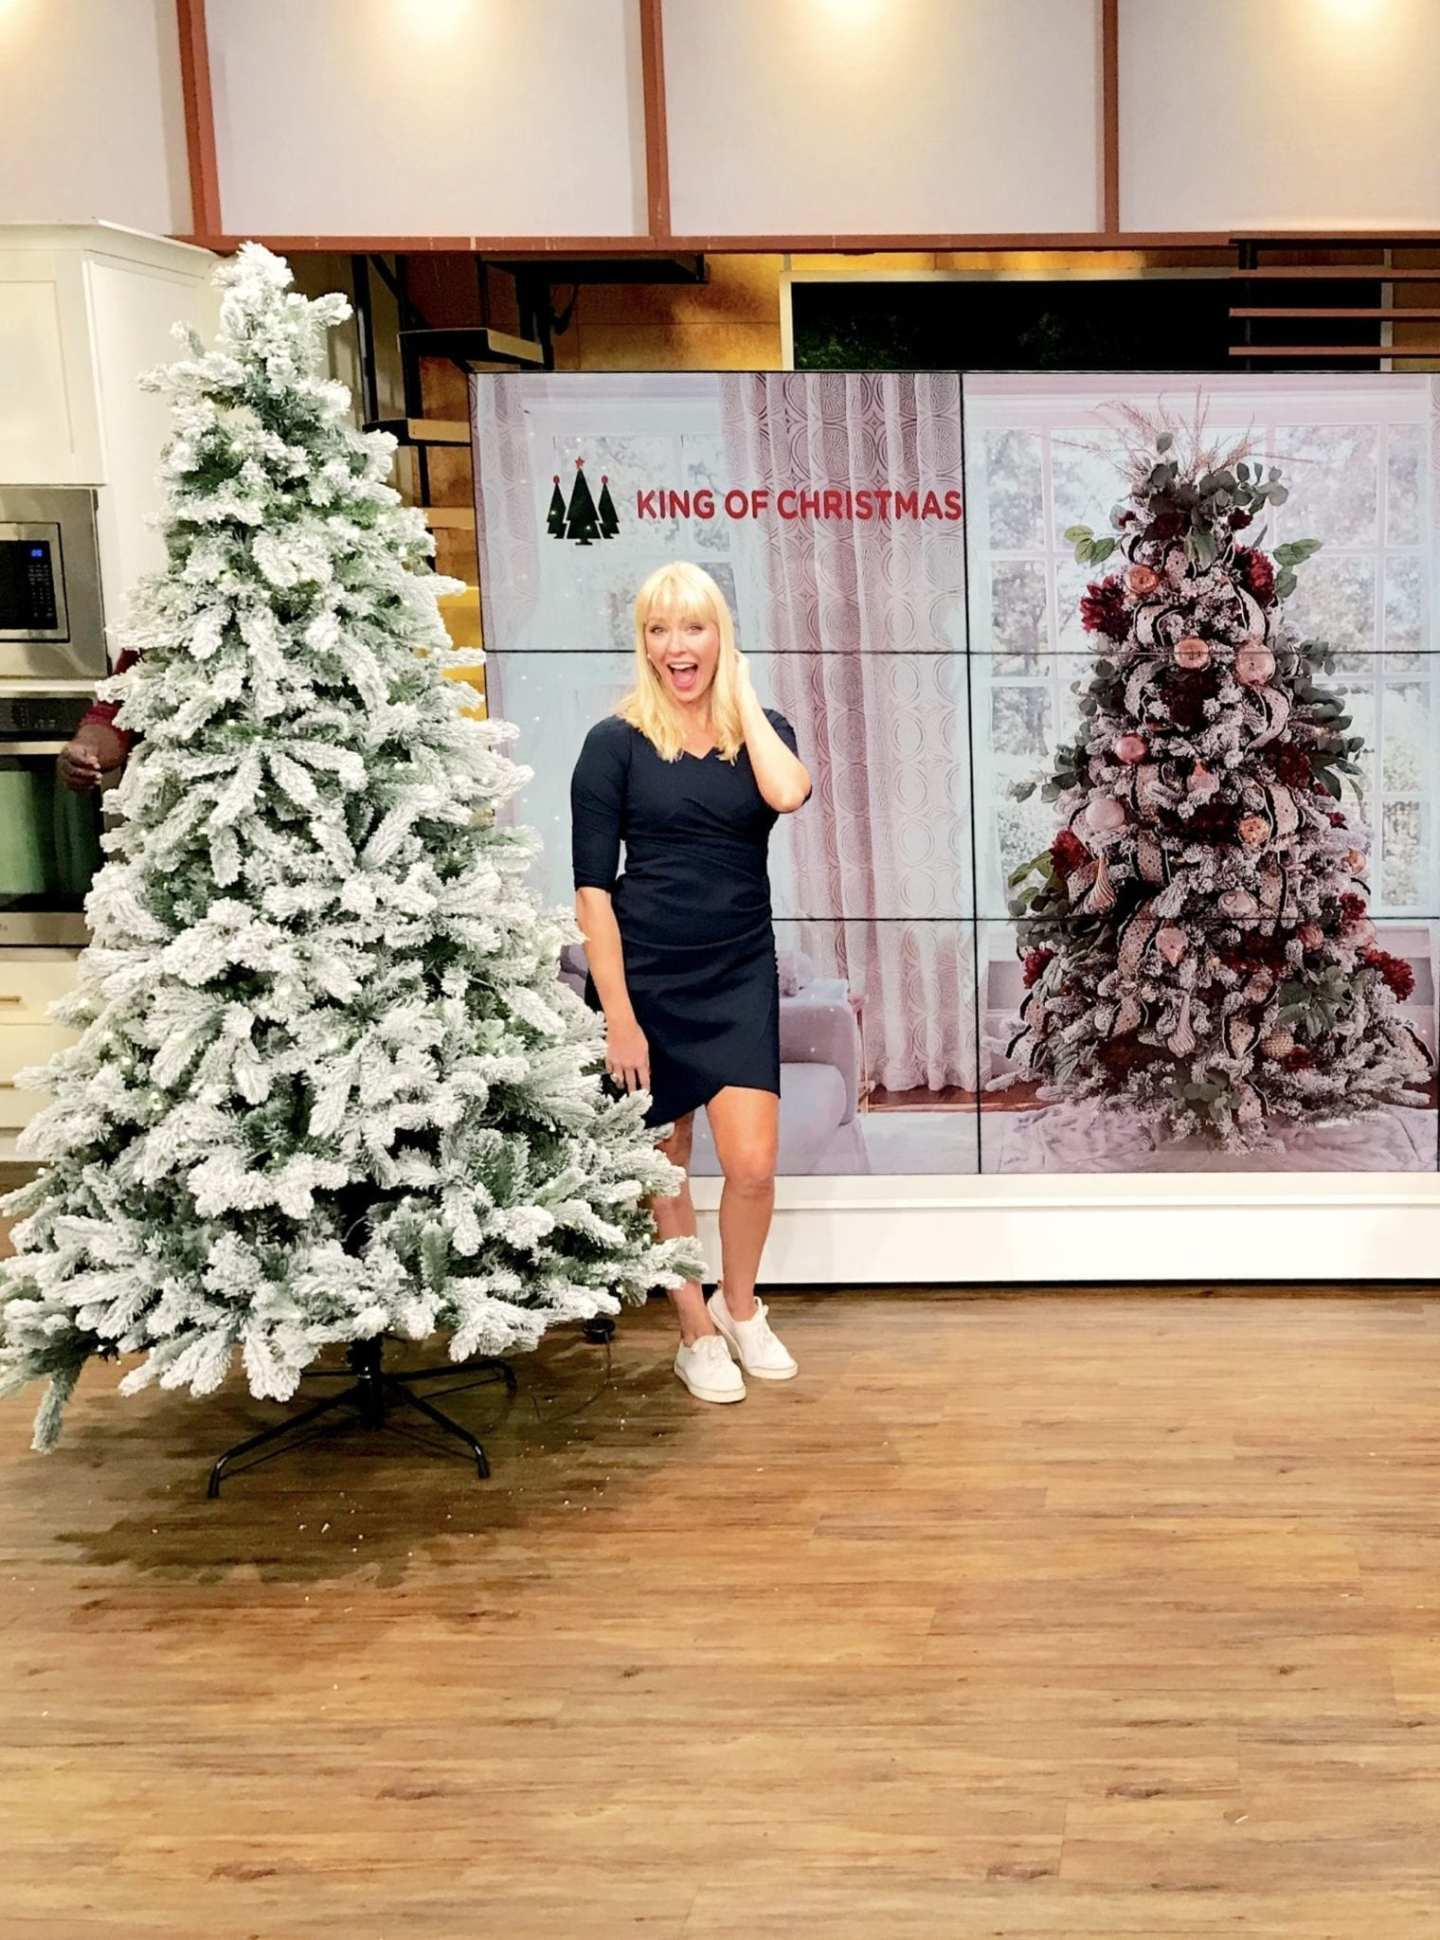 Atlanta Blogger Kelly Page on Atlanta and Company. TV segment about artificial tree company King of Christmas.